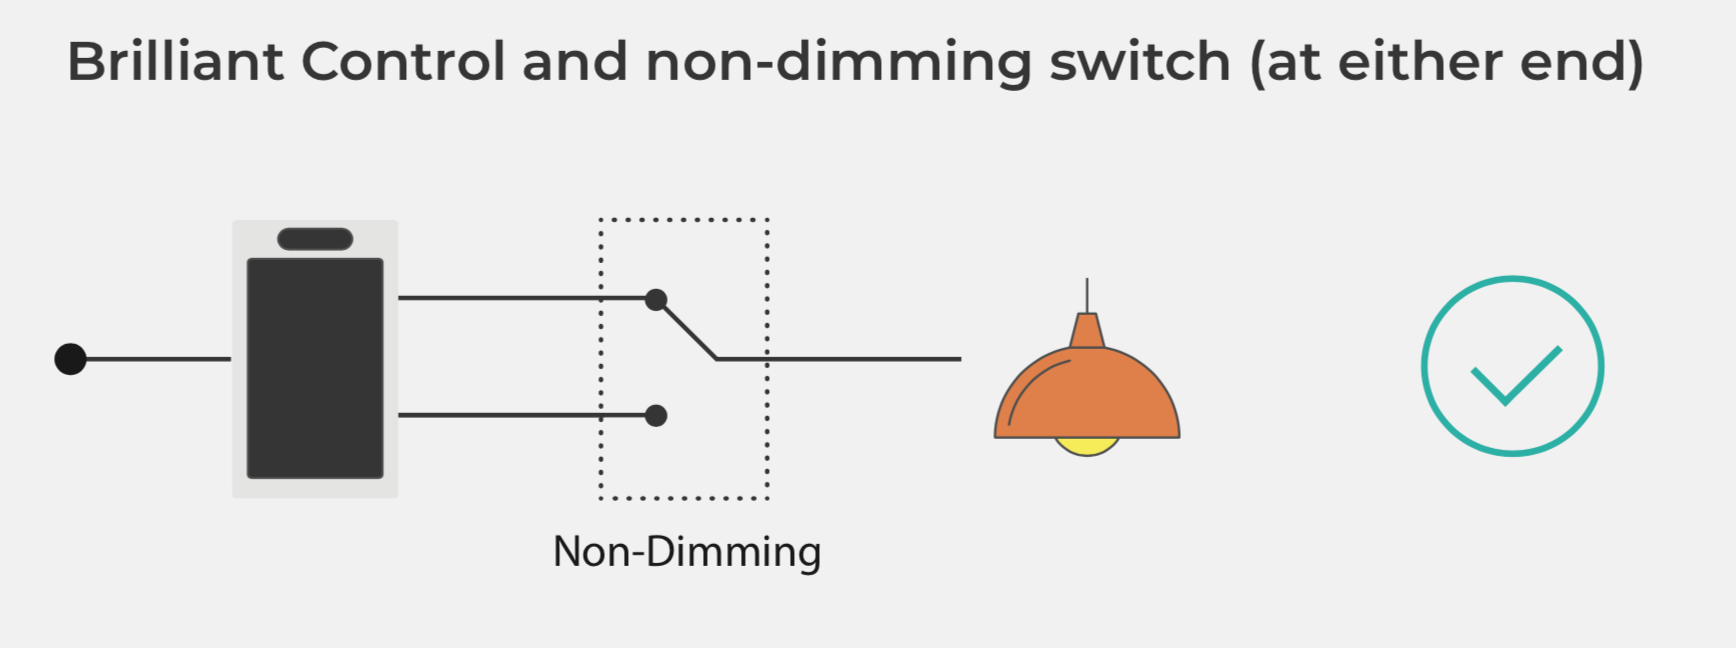 Brilliant_Control_and_non-dimming_switch_at_either_end.png